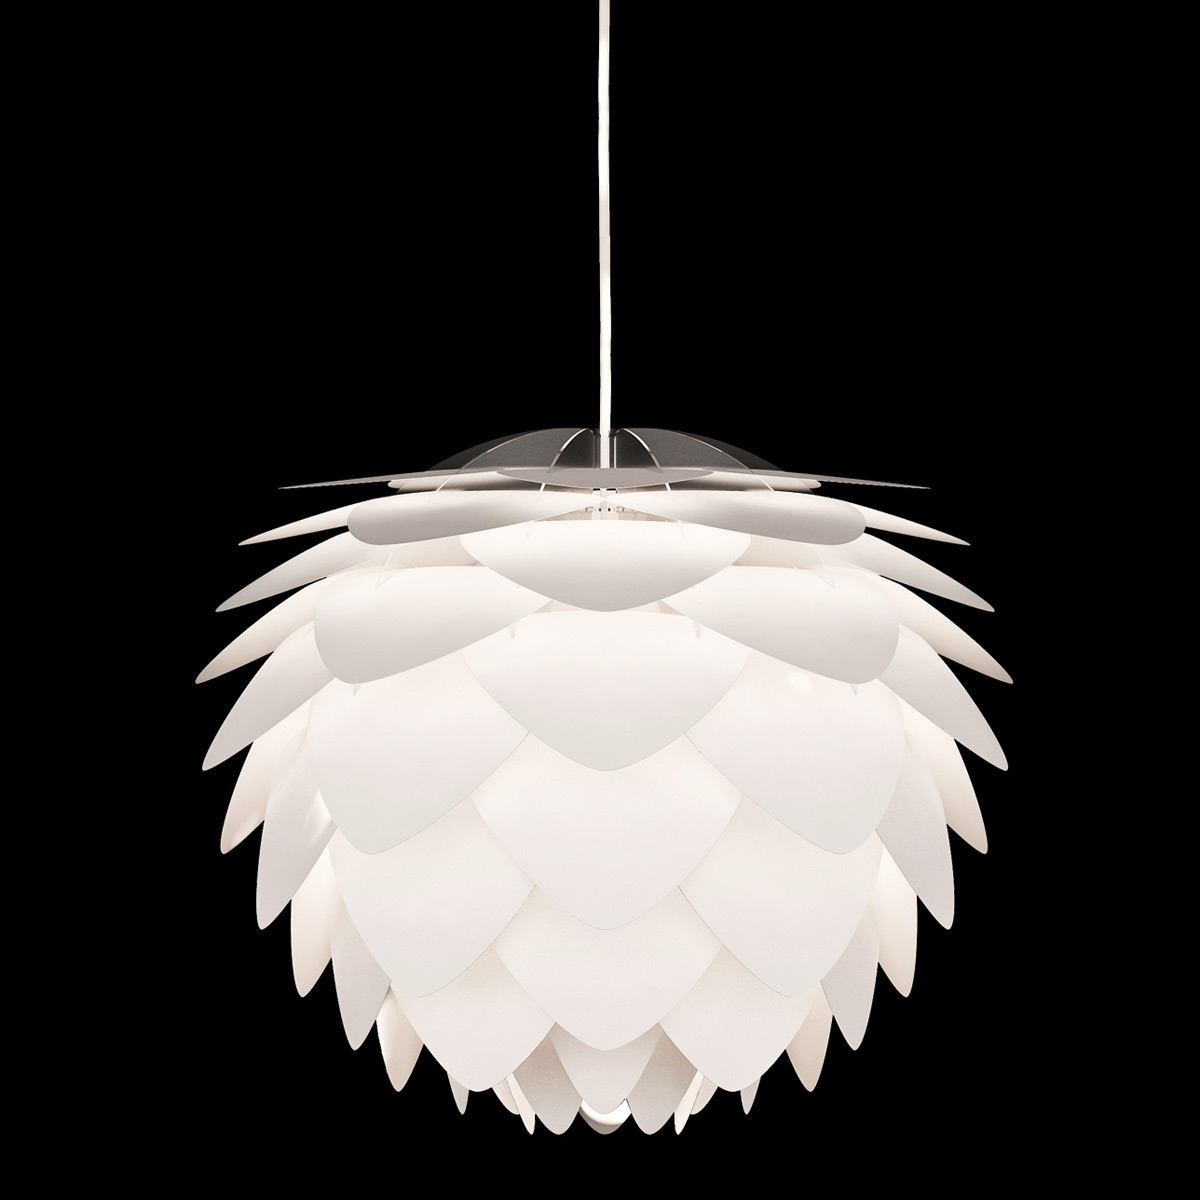 Brilliant lampen-design lampe